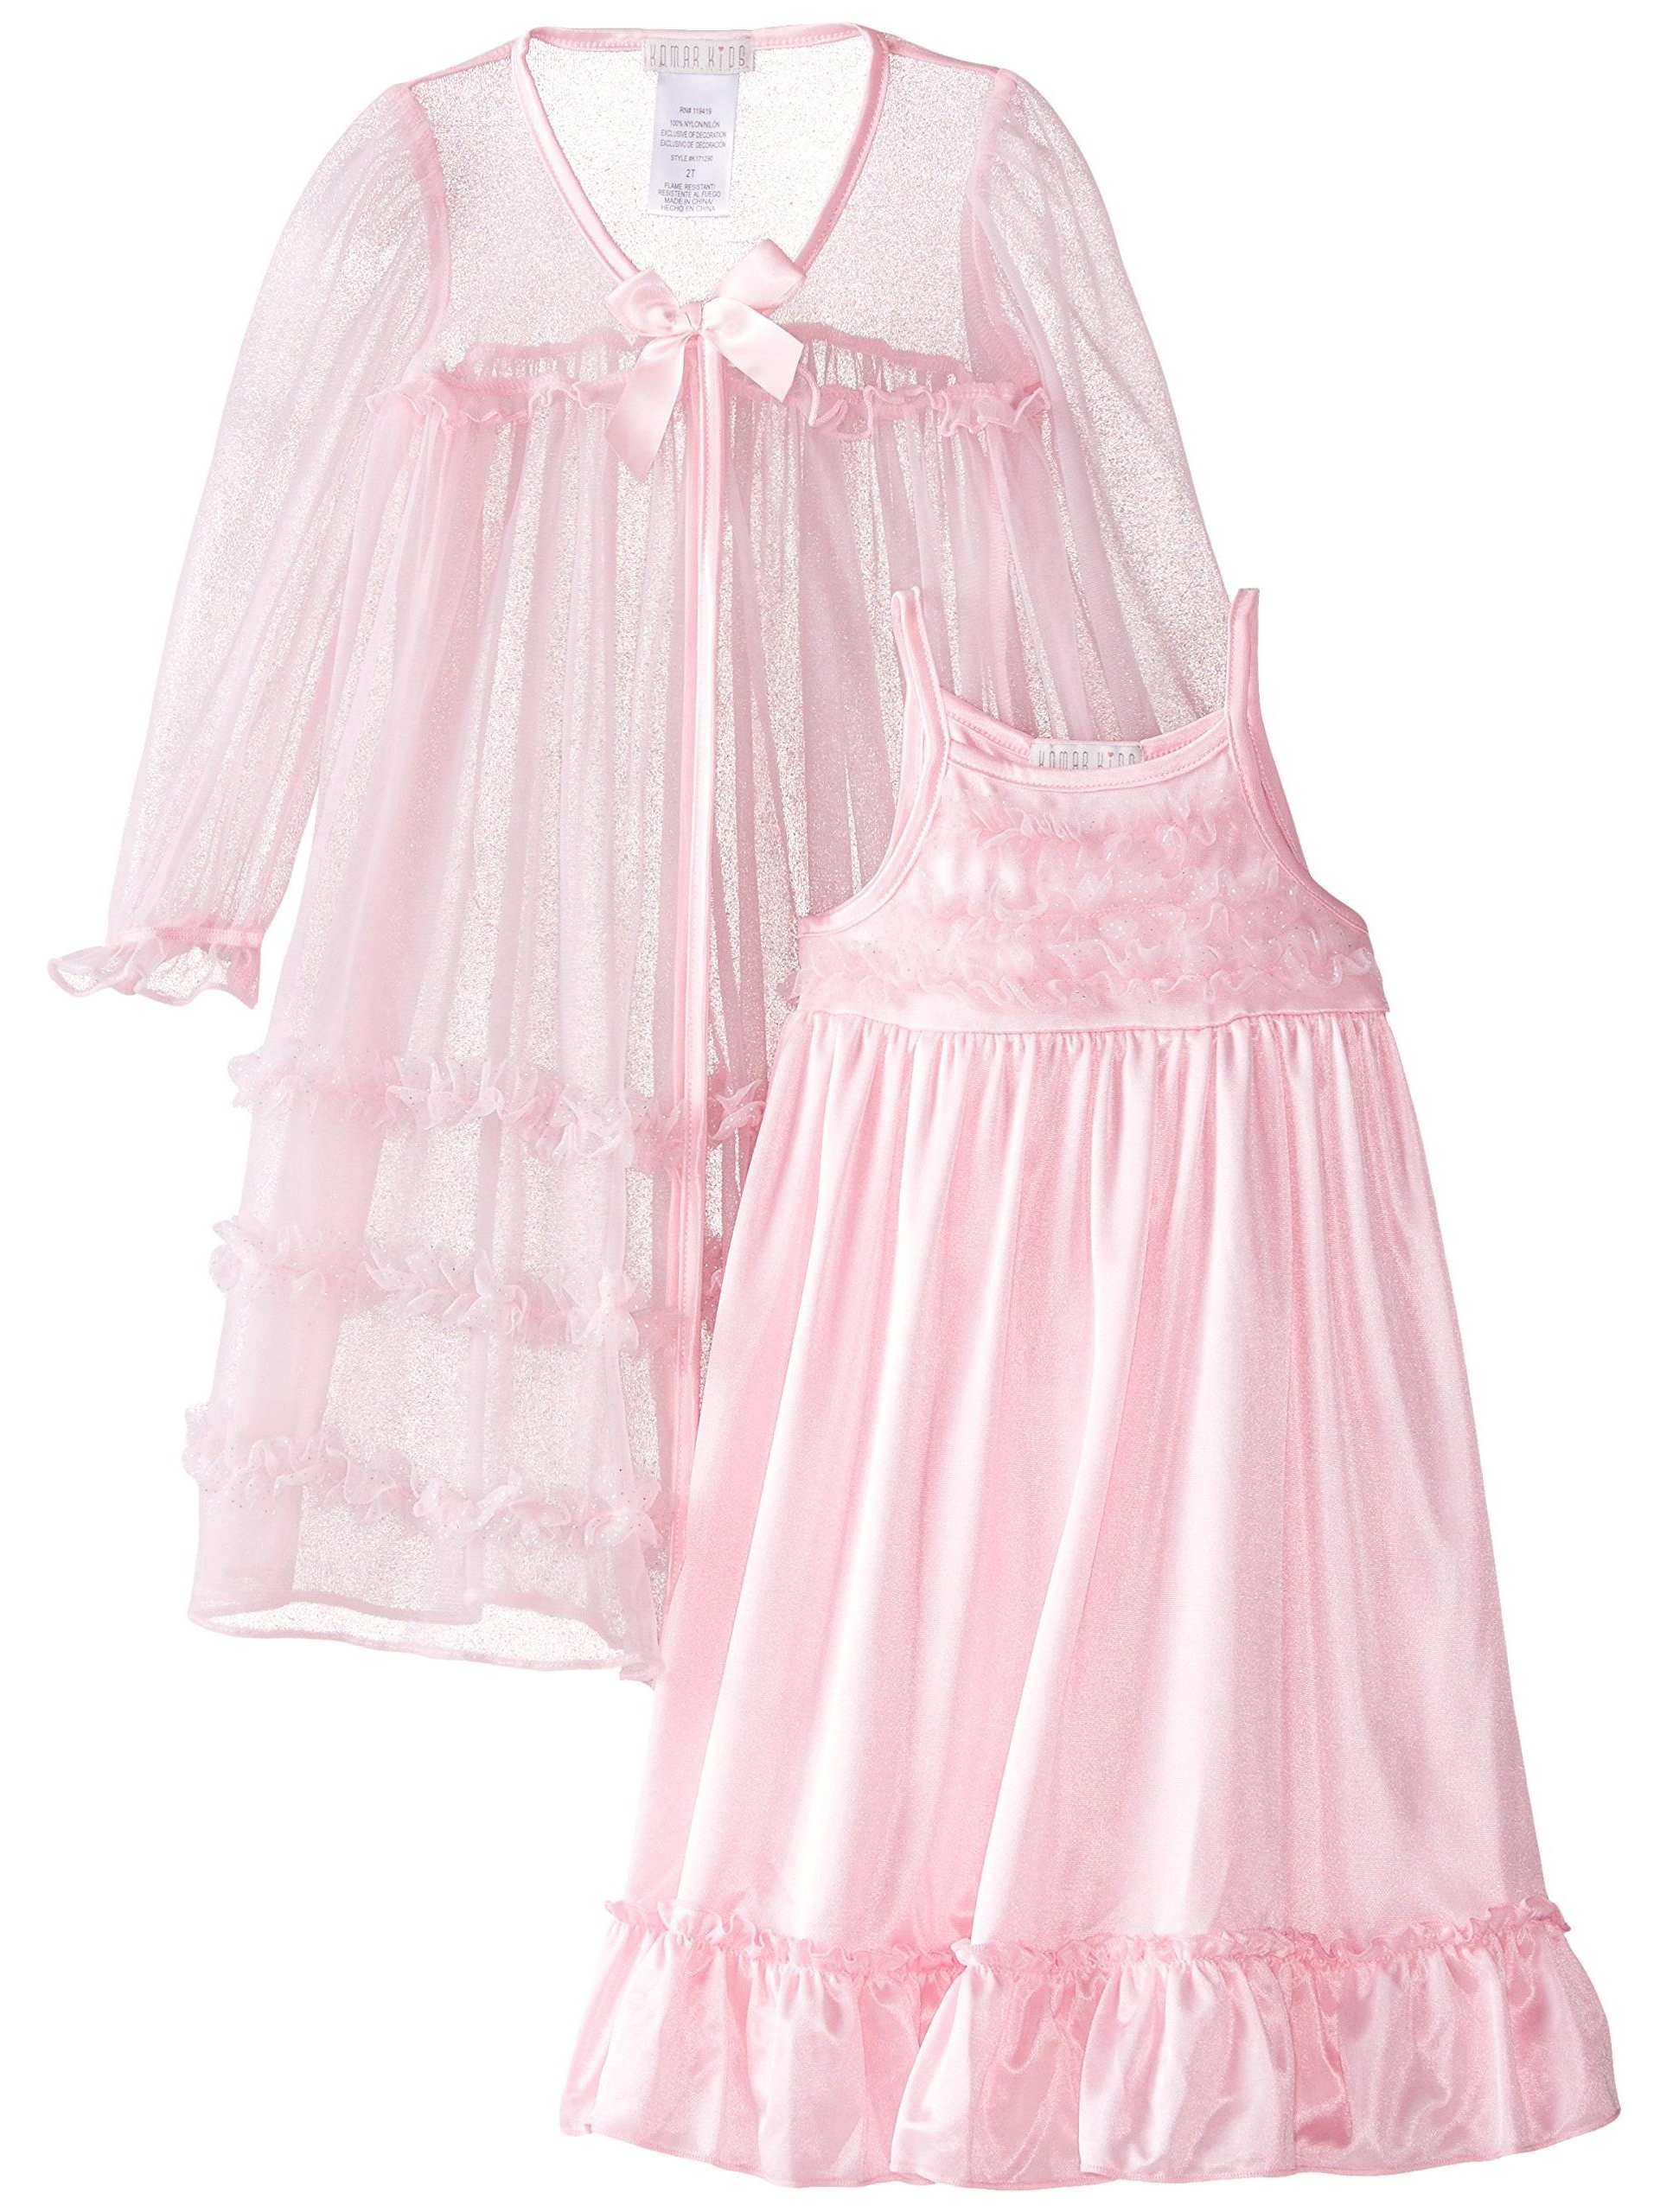 Little Girls' Pink or Red 2 Piece Peignoir Gown Set, Nightgown Pajama